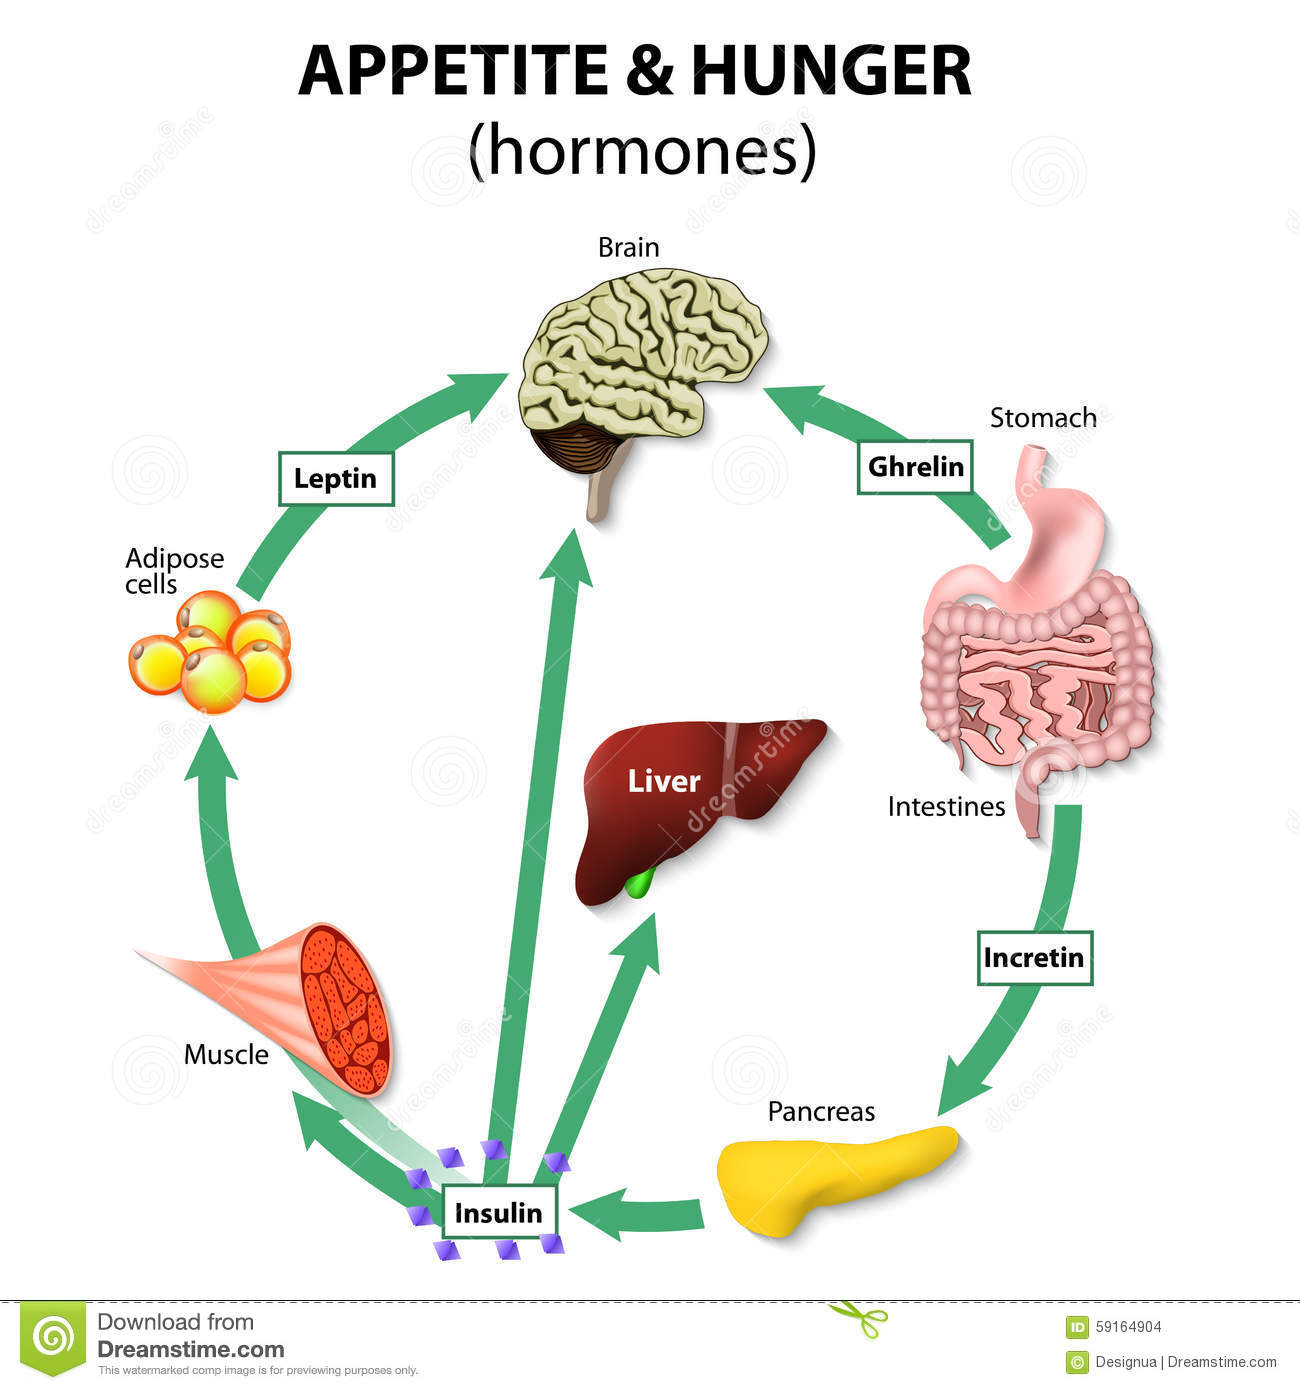 Hormones appetite & hunger stock photo. Image of liver